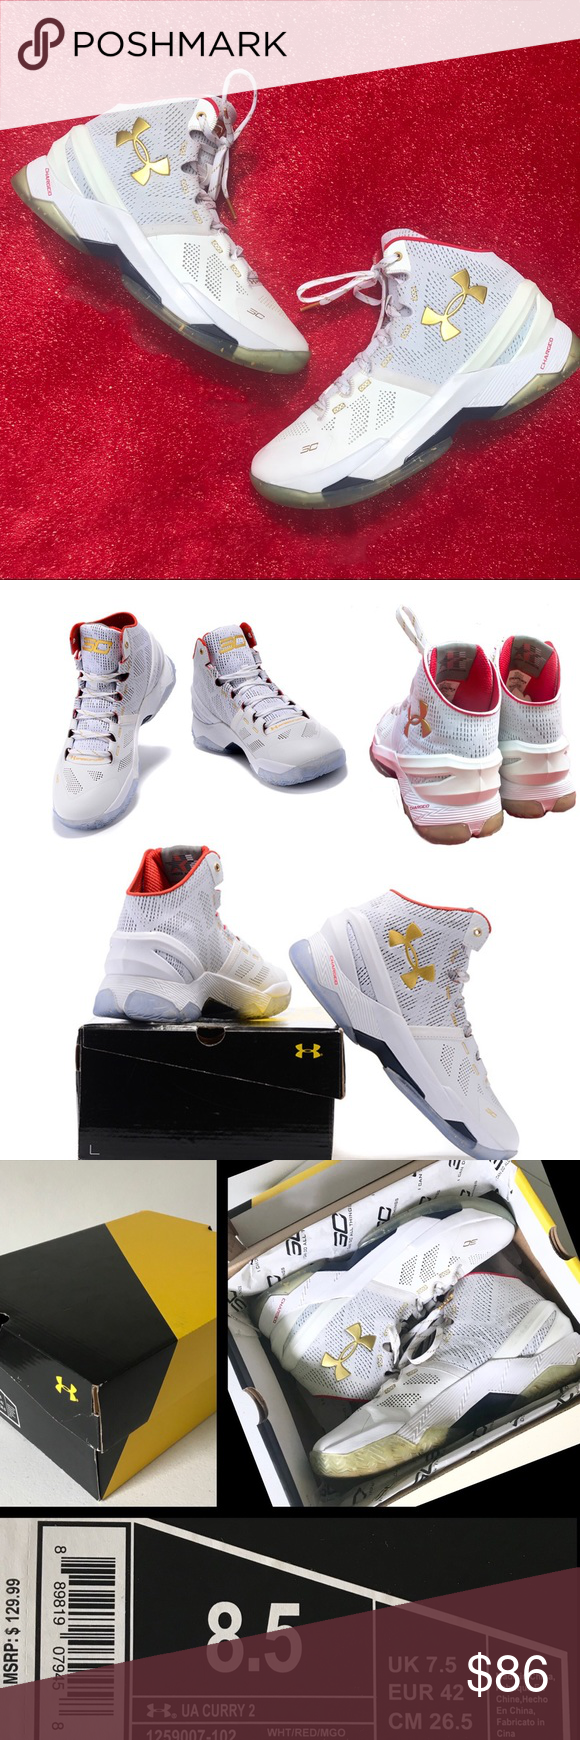 premium selection 72451 4bd0b Under Armour Curry 2 All Star Basketball Shoes 8.5 | My Posh ...